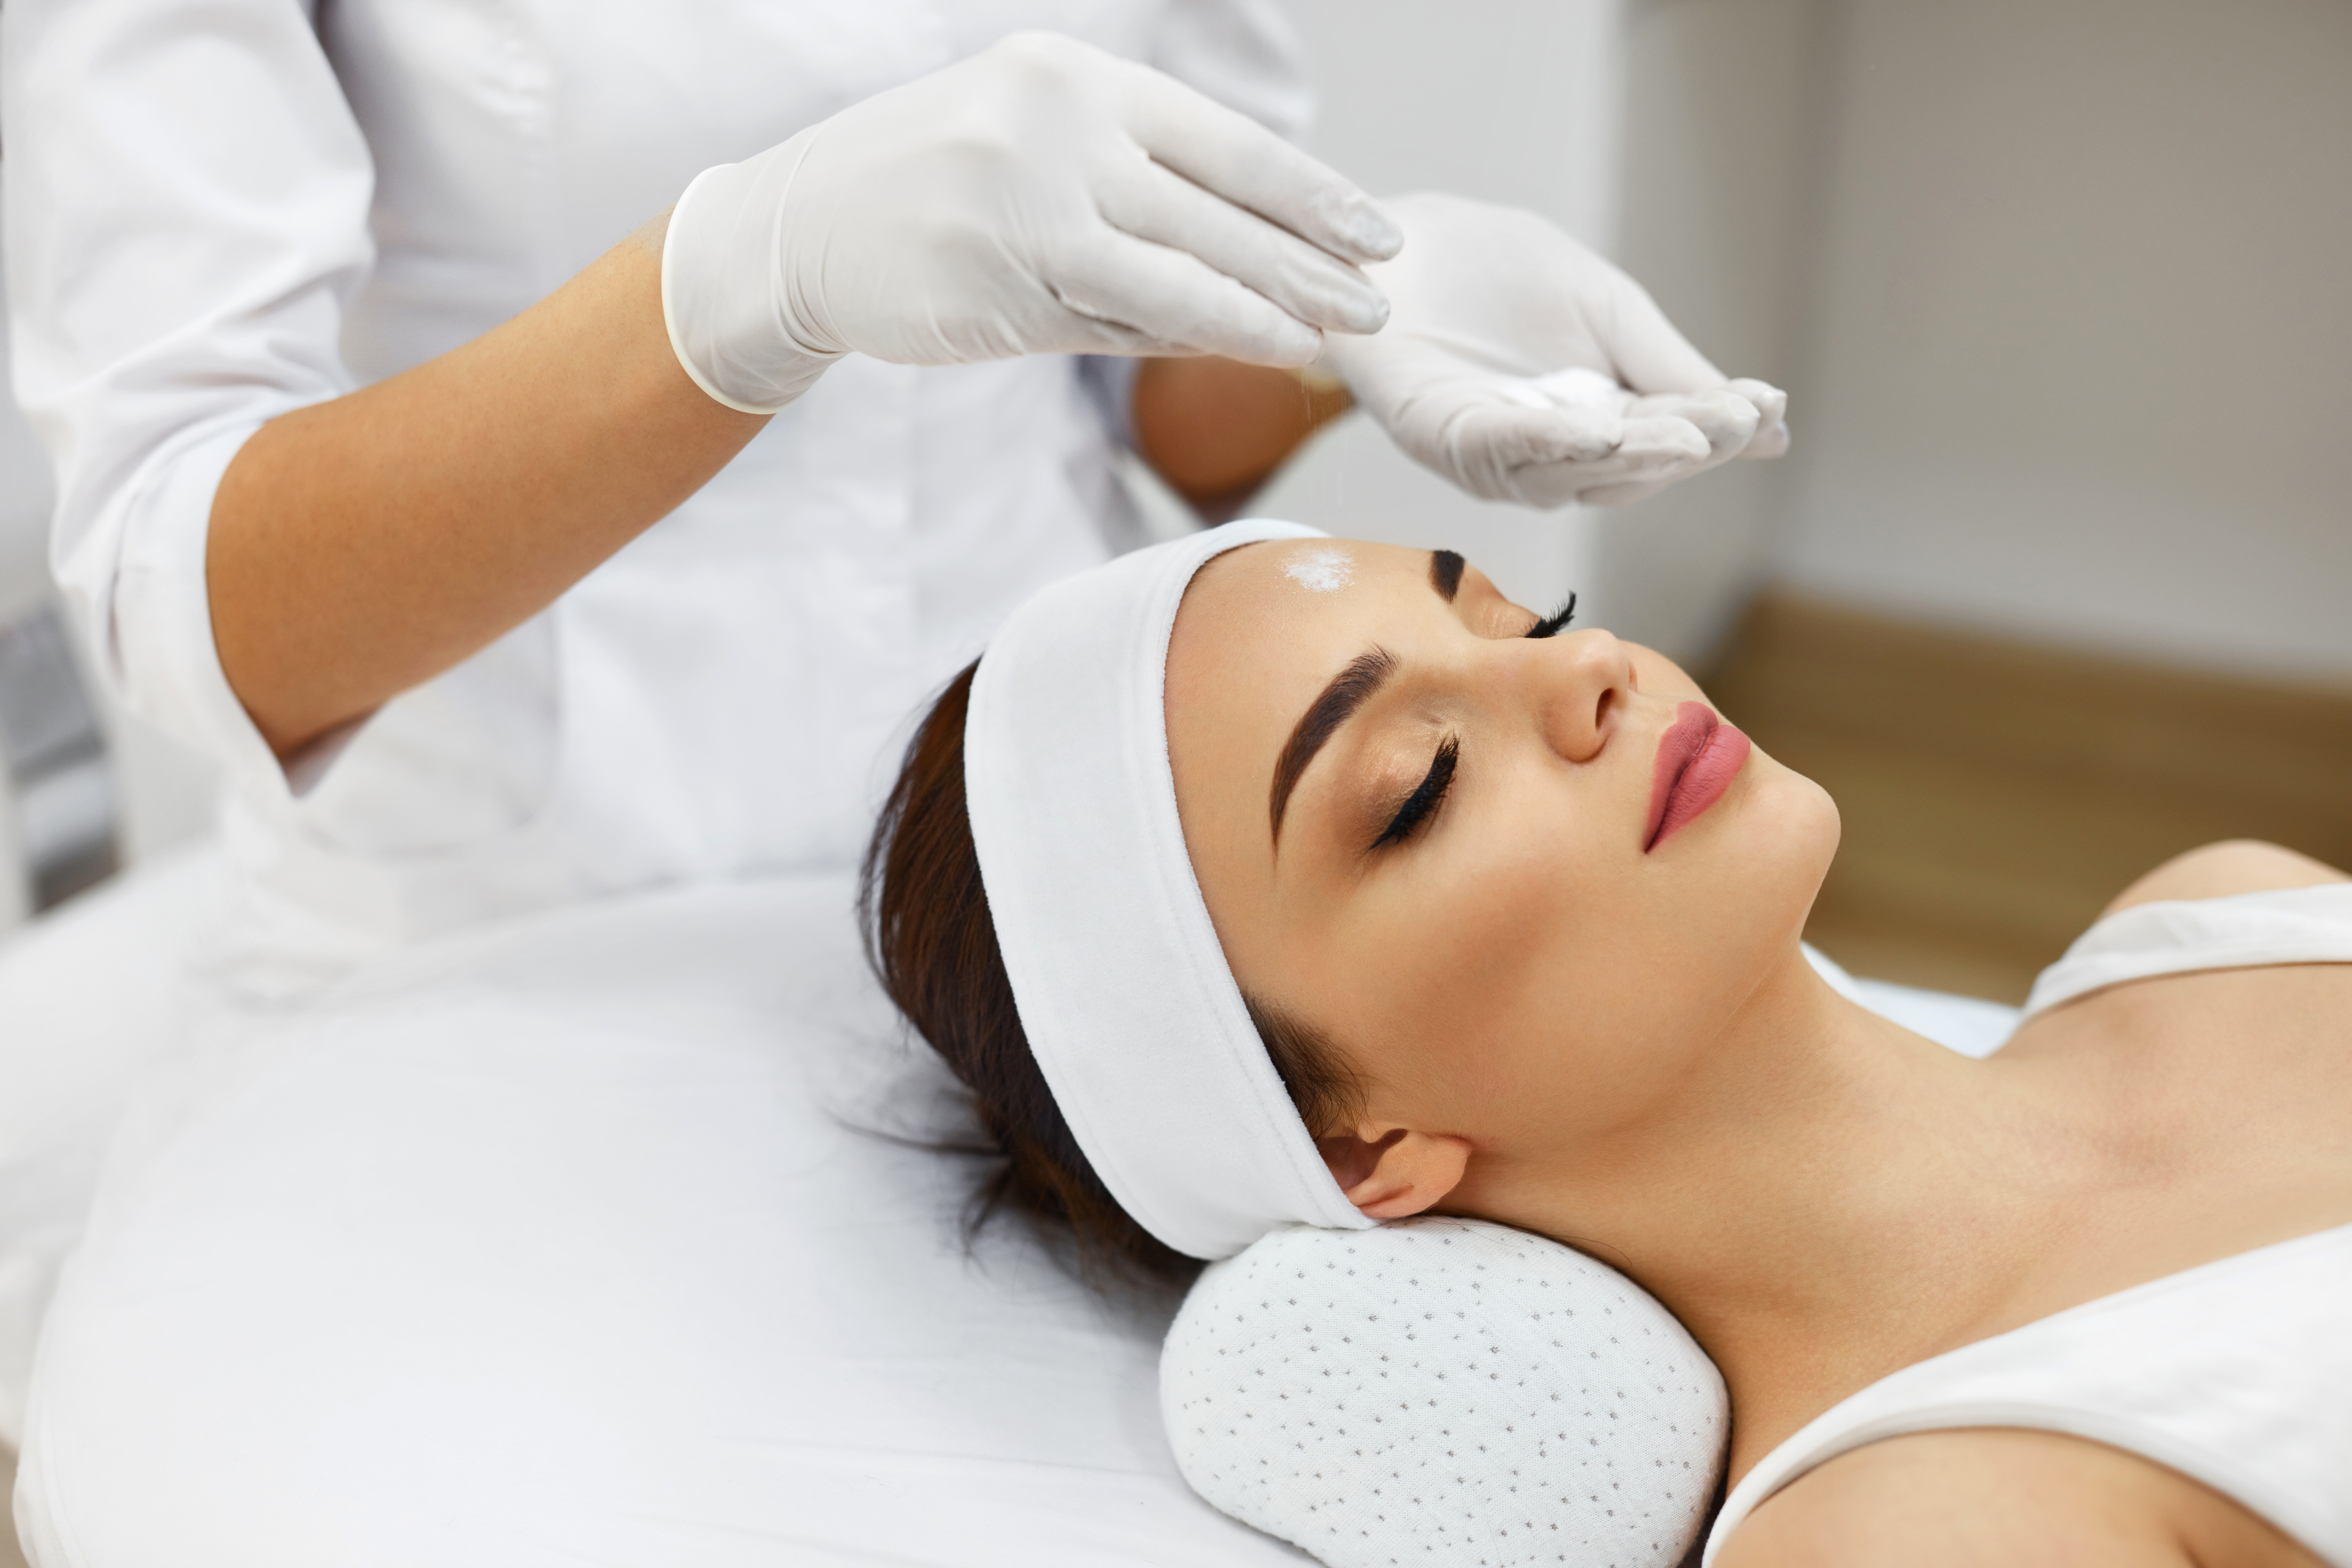 Spa Salon. Beautician Does Cosmetic Procedures Applying White Cosmetic Powder On Woman Face. Closeup Of Beautiful Female Receiving Facial Treatment, Cosmetic Procedures. Skin Care. High Resolution